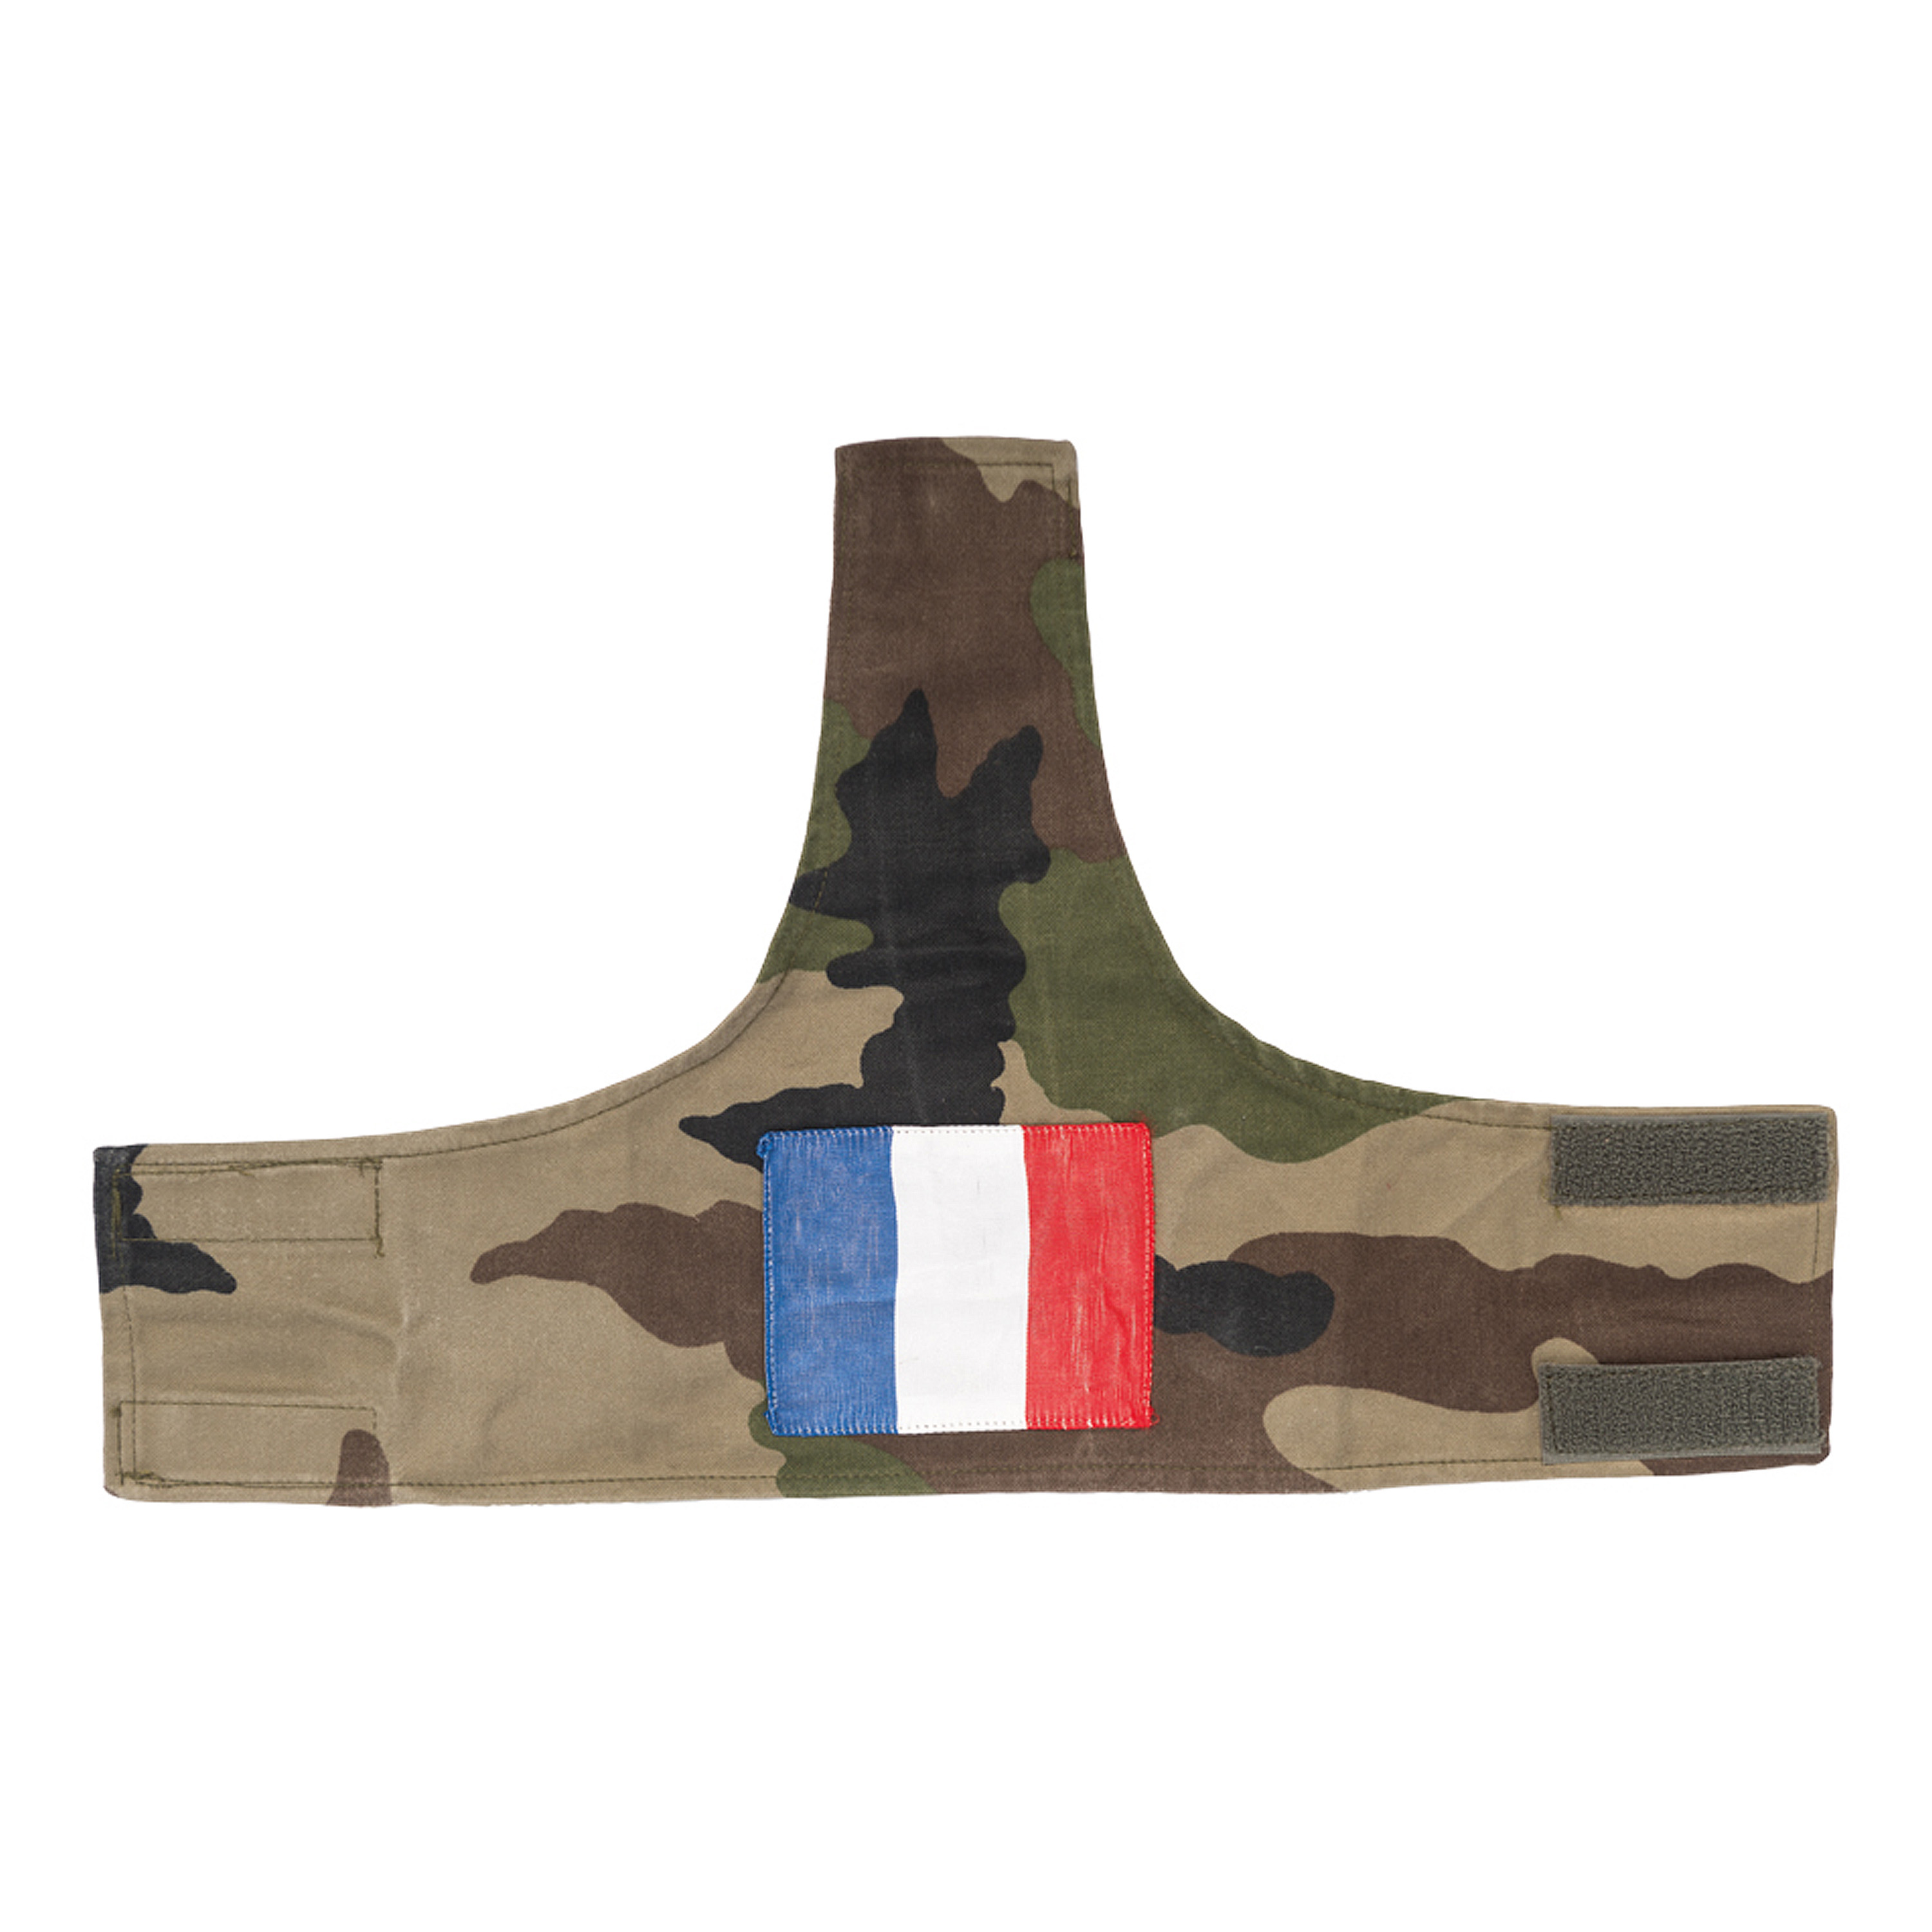 French Arm Office with Flag CCE Camo Used